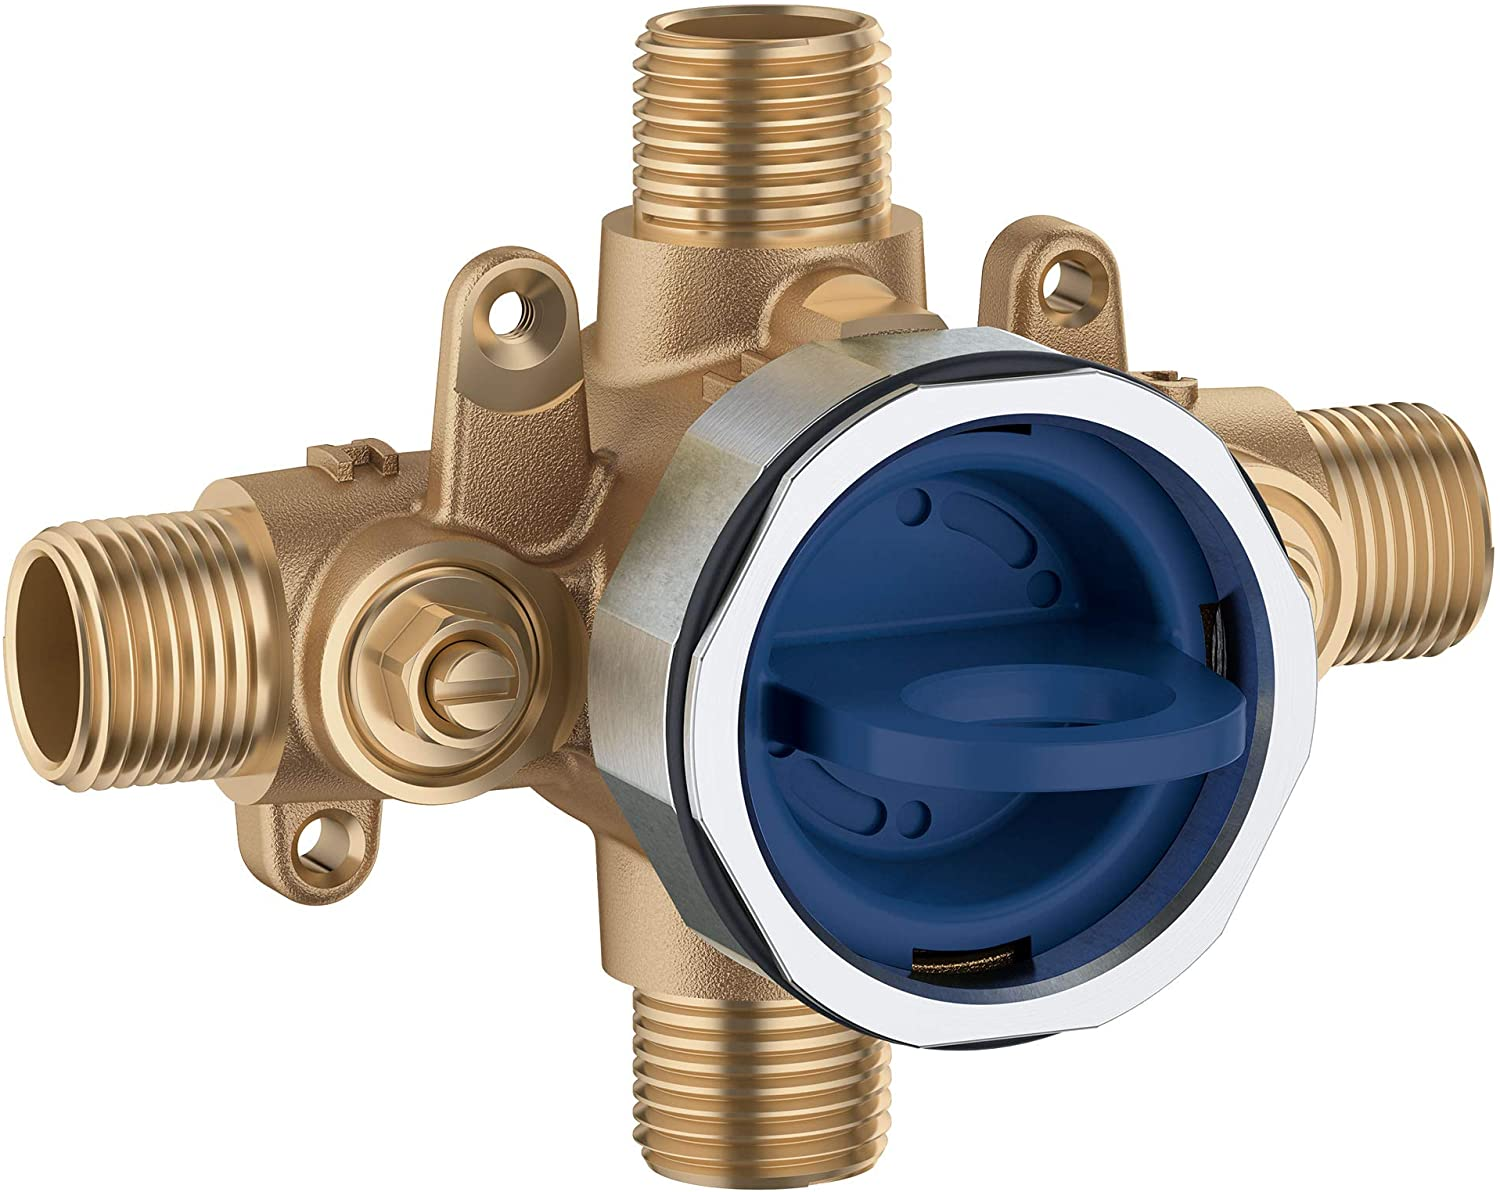 Grohe 35110000 Grohsafe 3 0 Pressure Balance Rough In Valve Unfinished Amazon Com